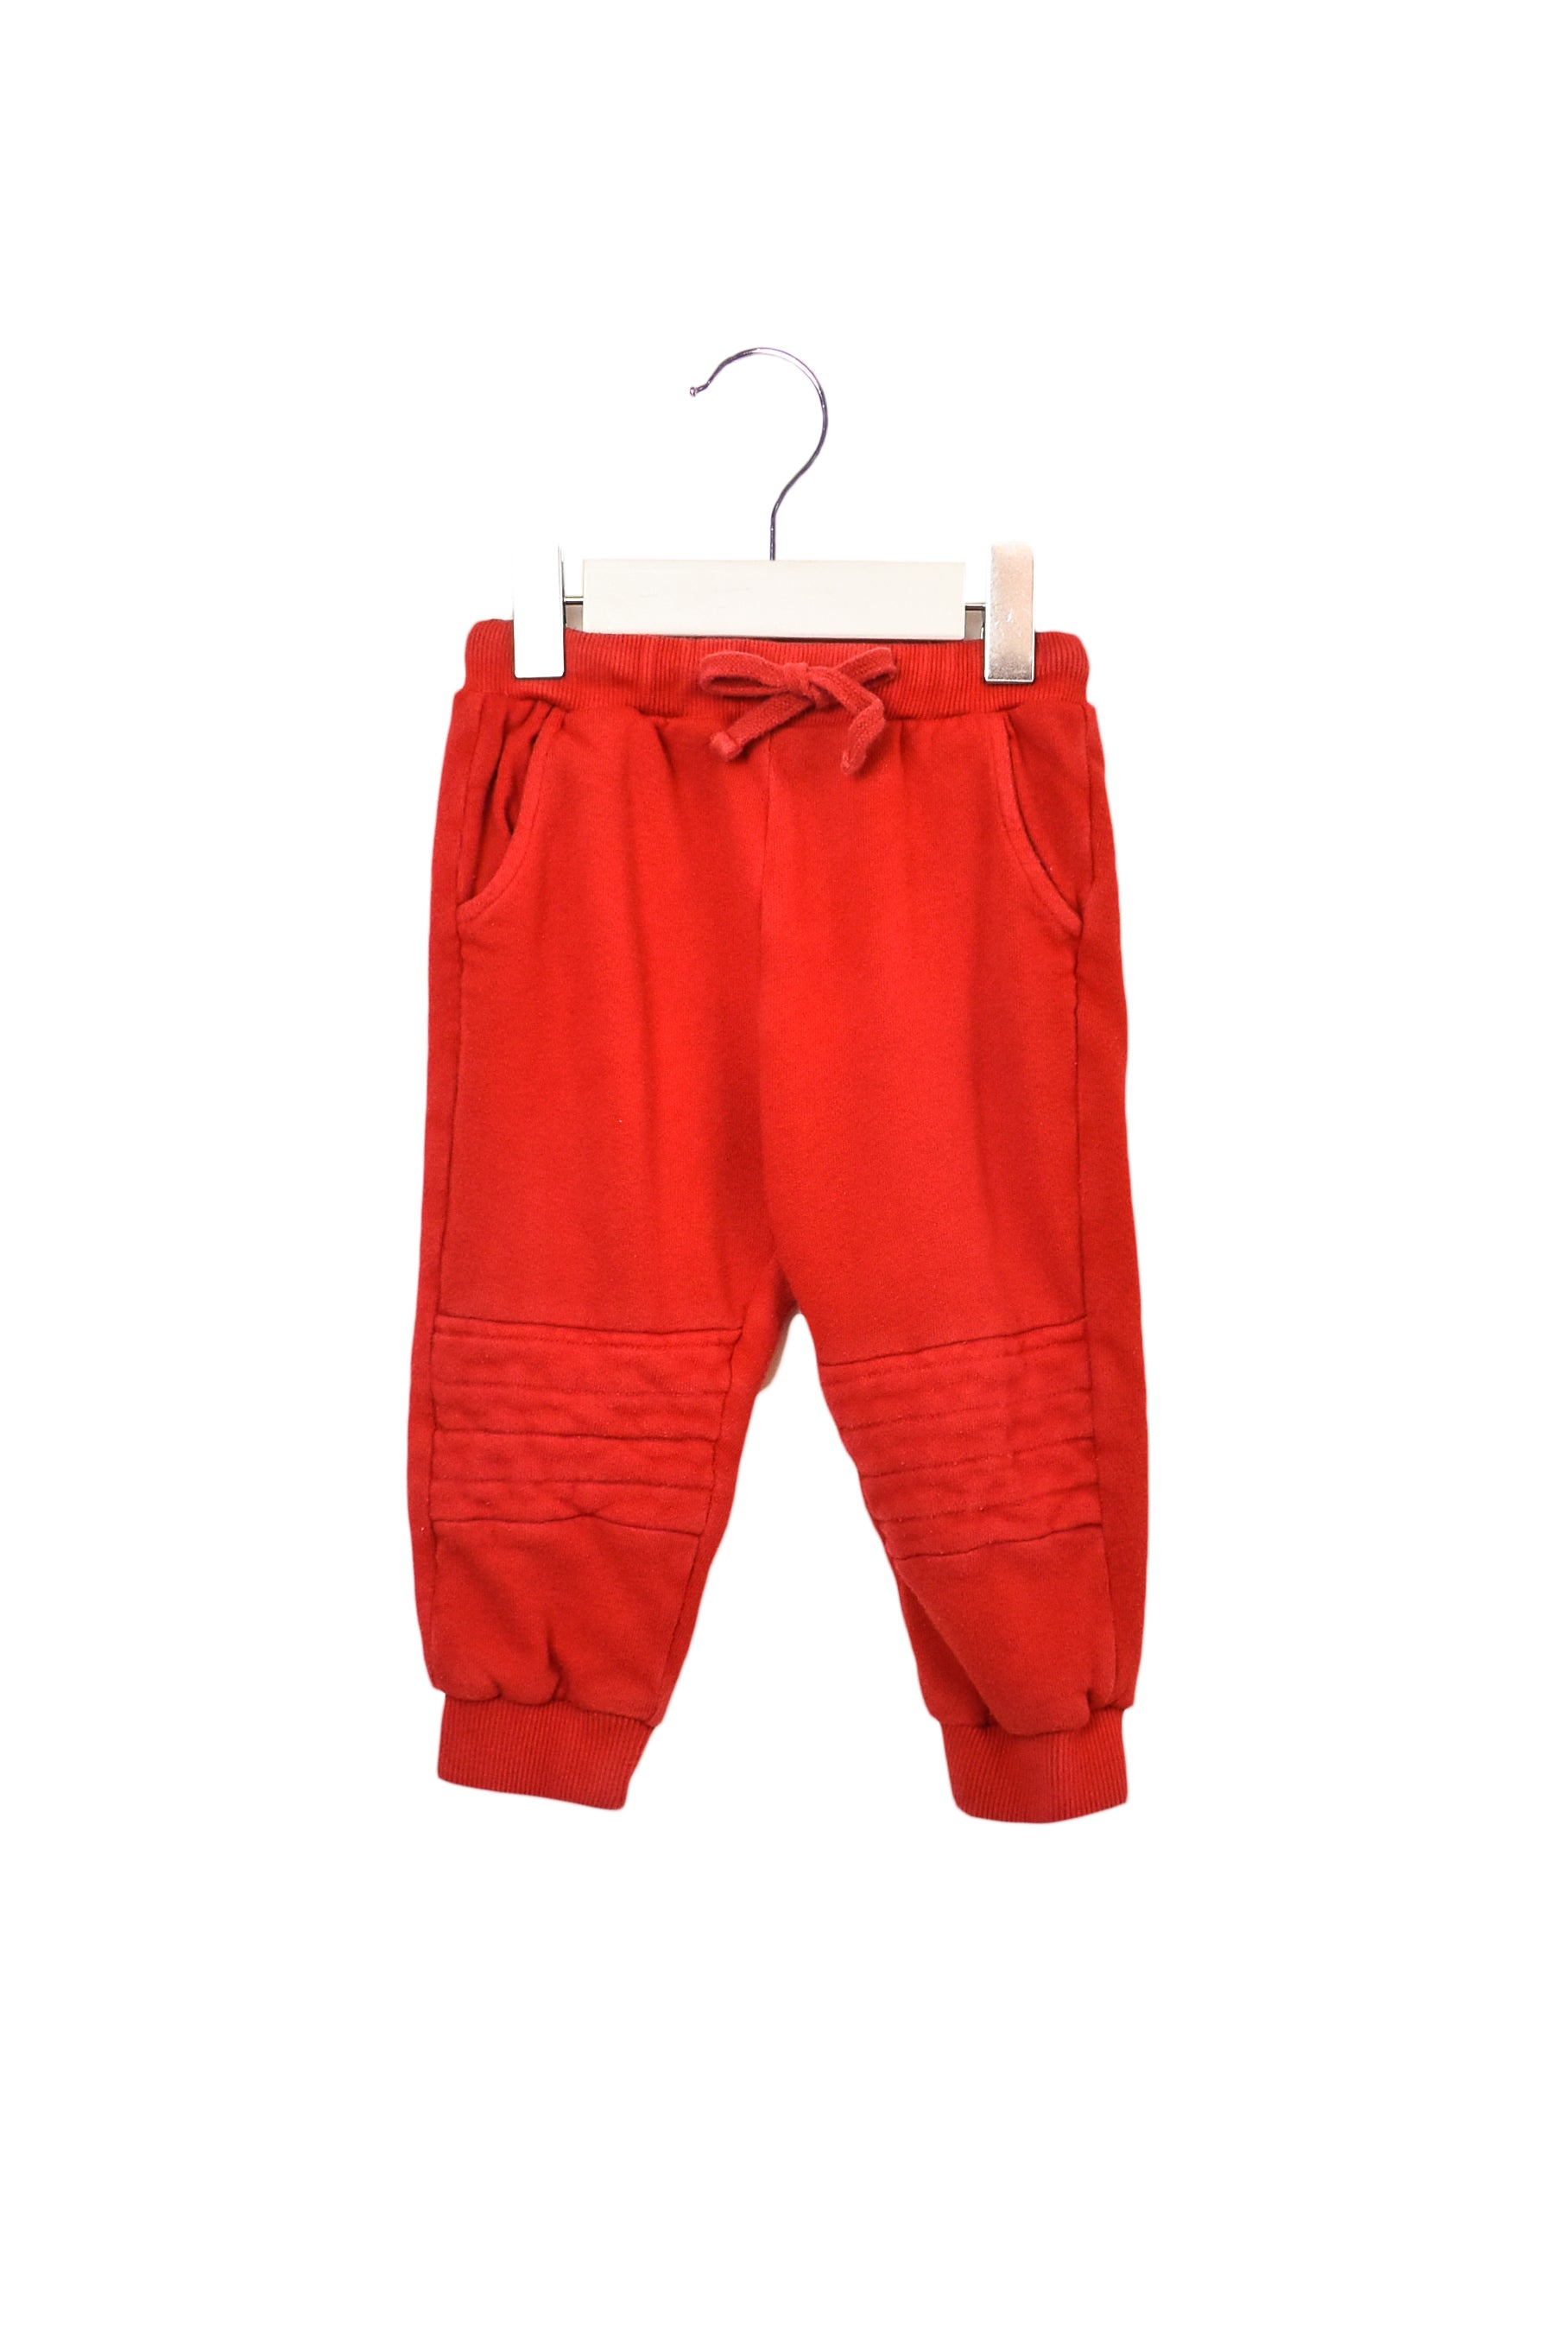 10008328 Seed Baby ~ Pants 6-12M at Retykle